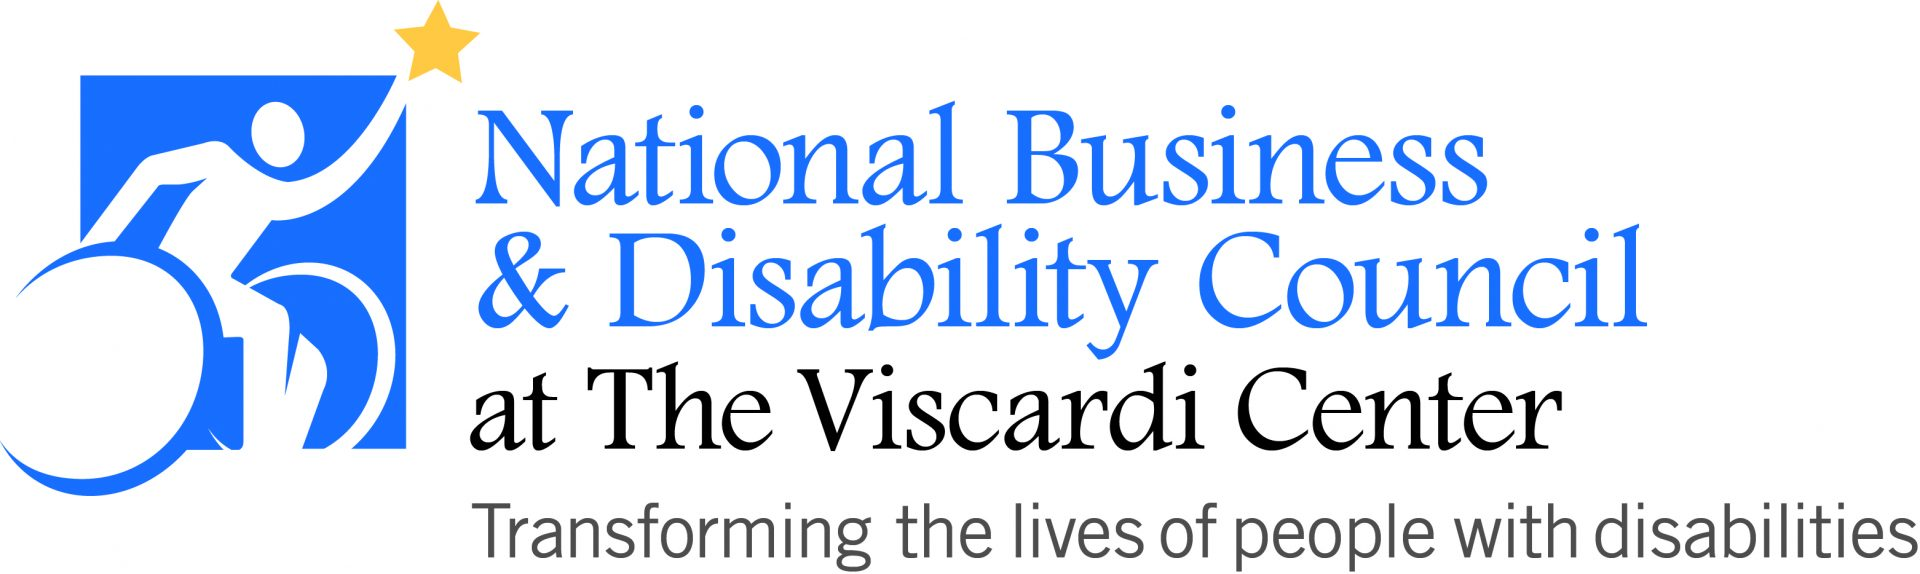 The National Business & Disability Council at The Viscardi Center blue and white logo.